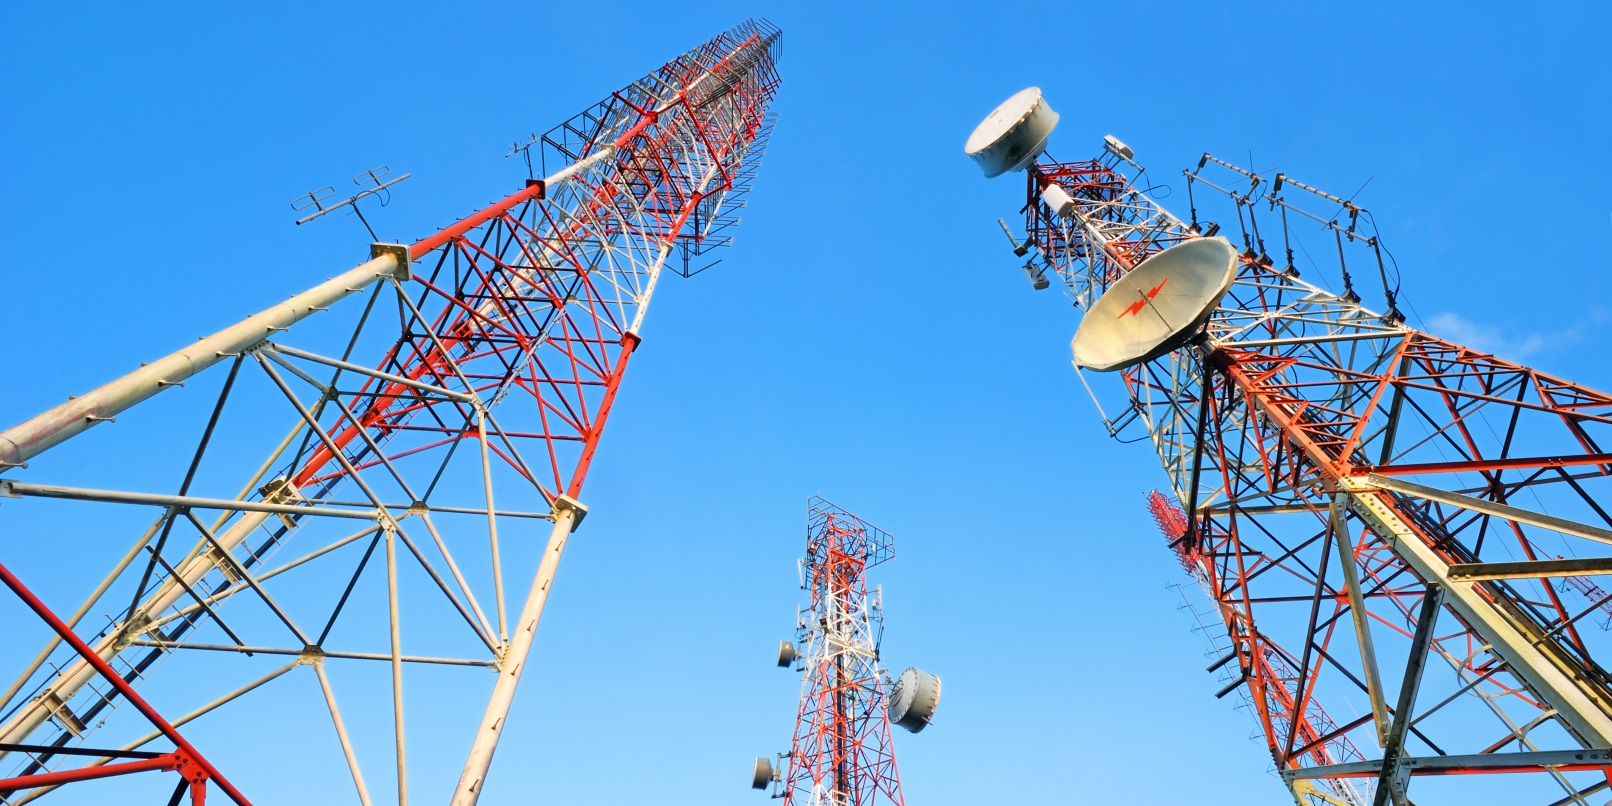 Eyes on the prize: Spectrum auction to pave the way for UK's 5G mobile future